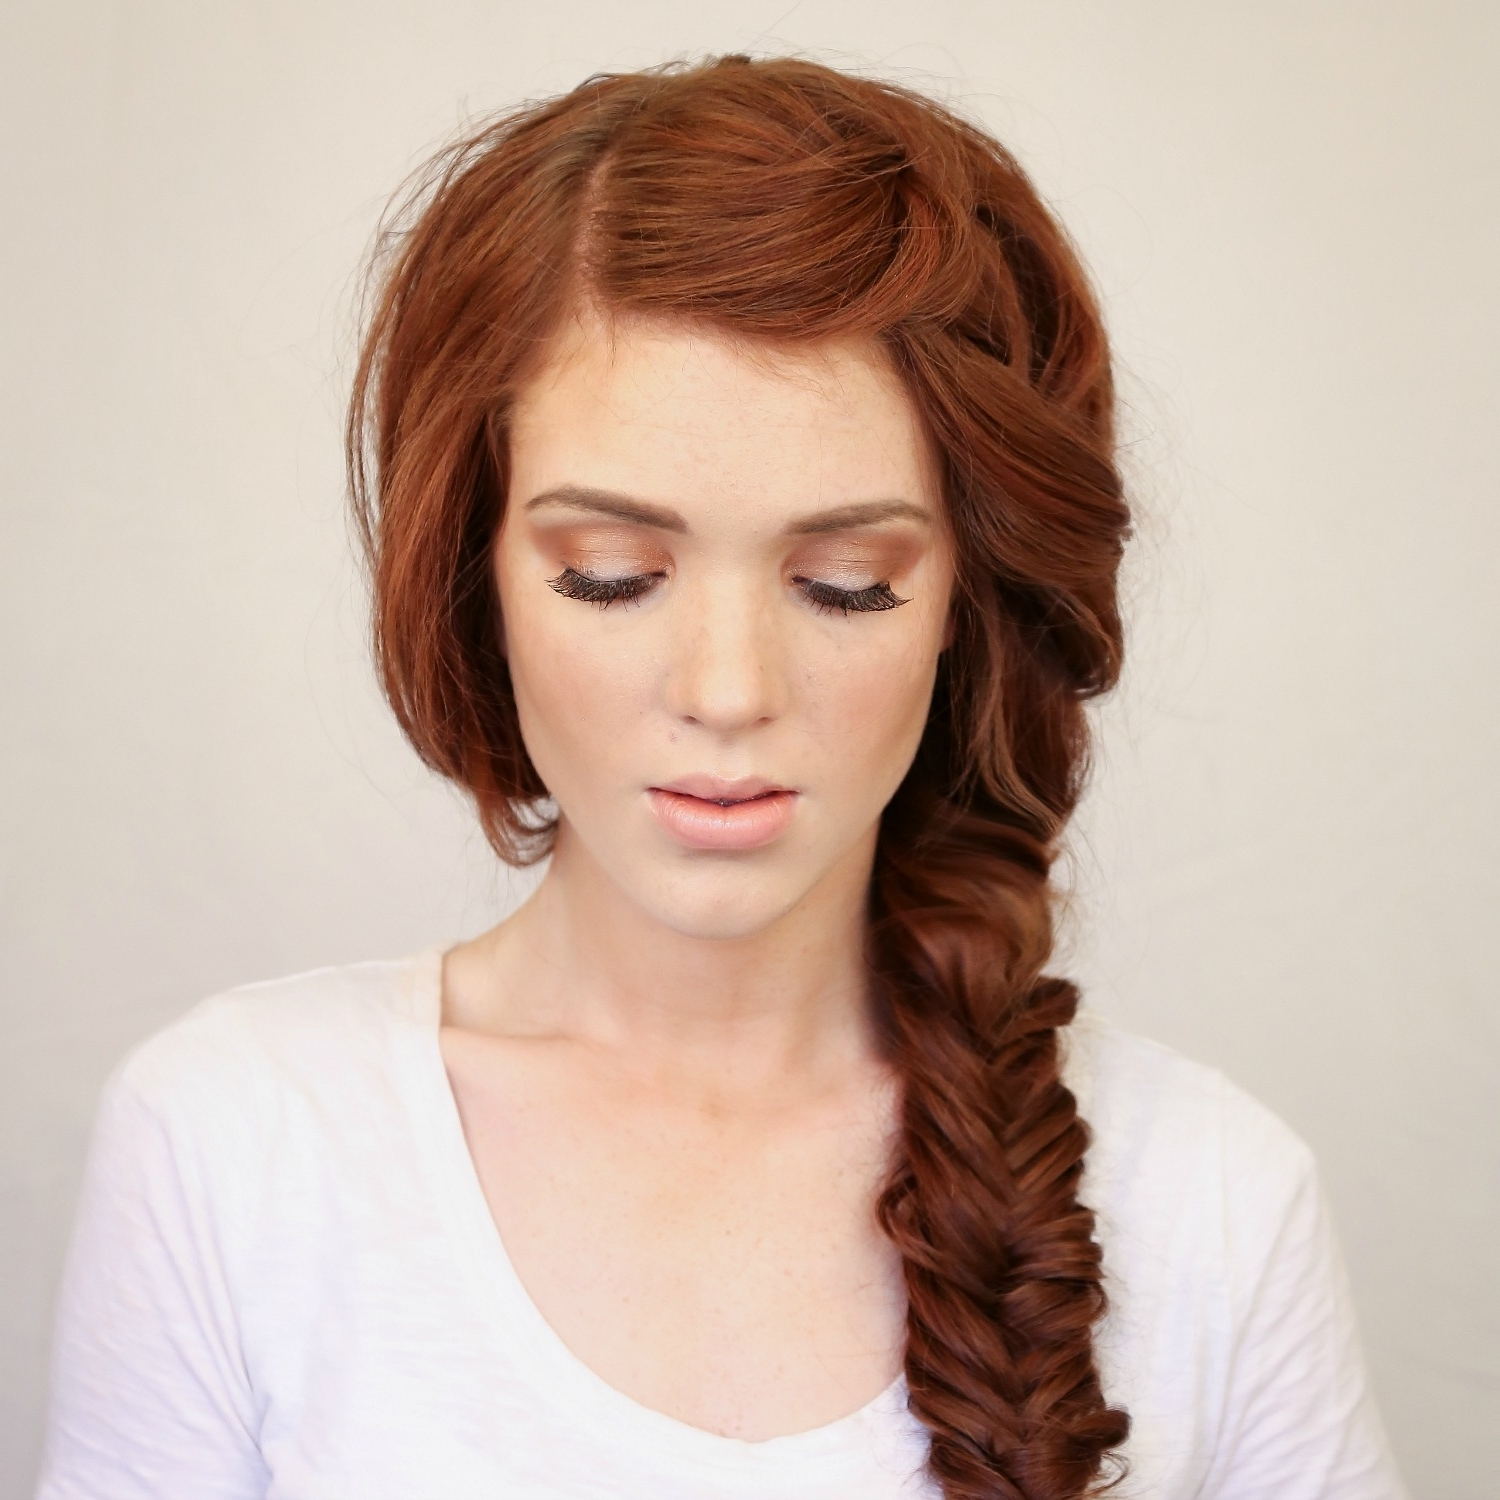 Winstonia Intended For Trendy Bohemian Side Braid Hairstyles (View 15 of 15)